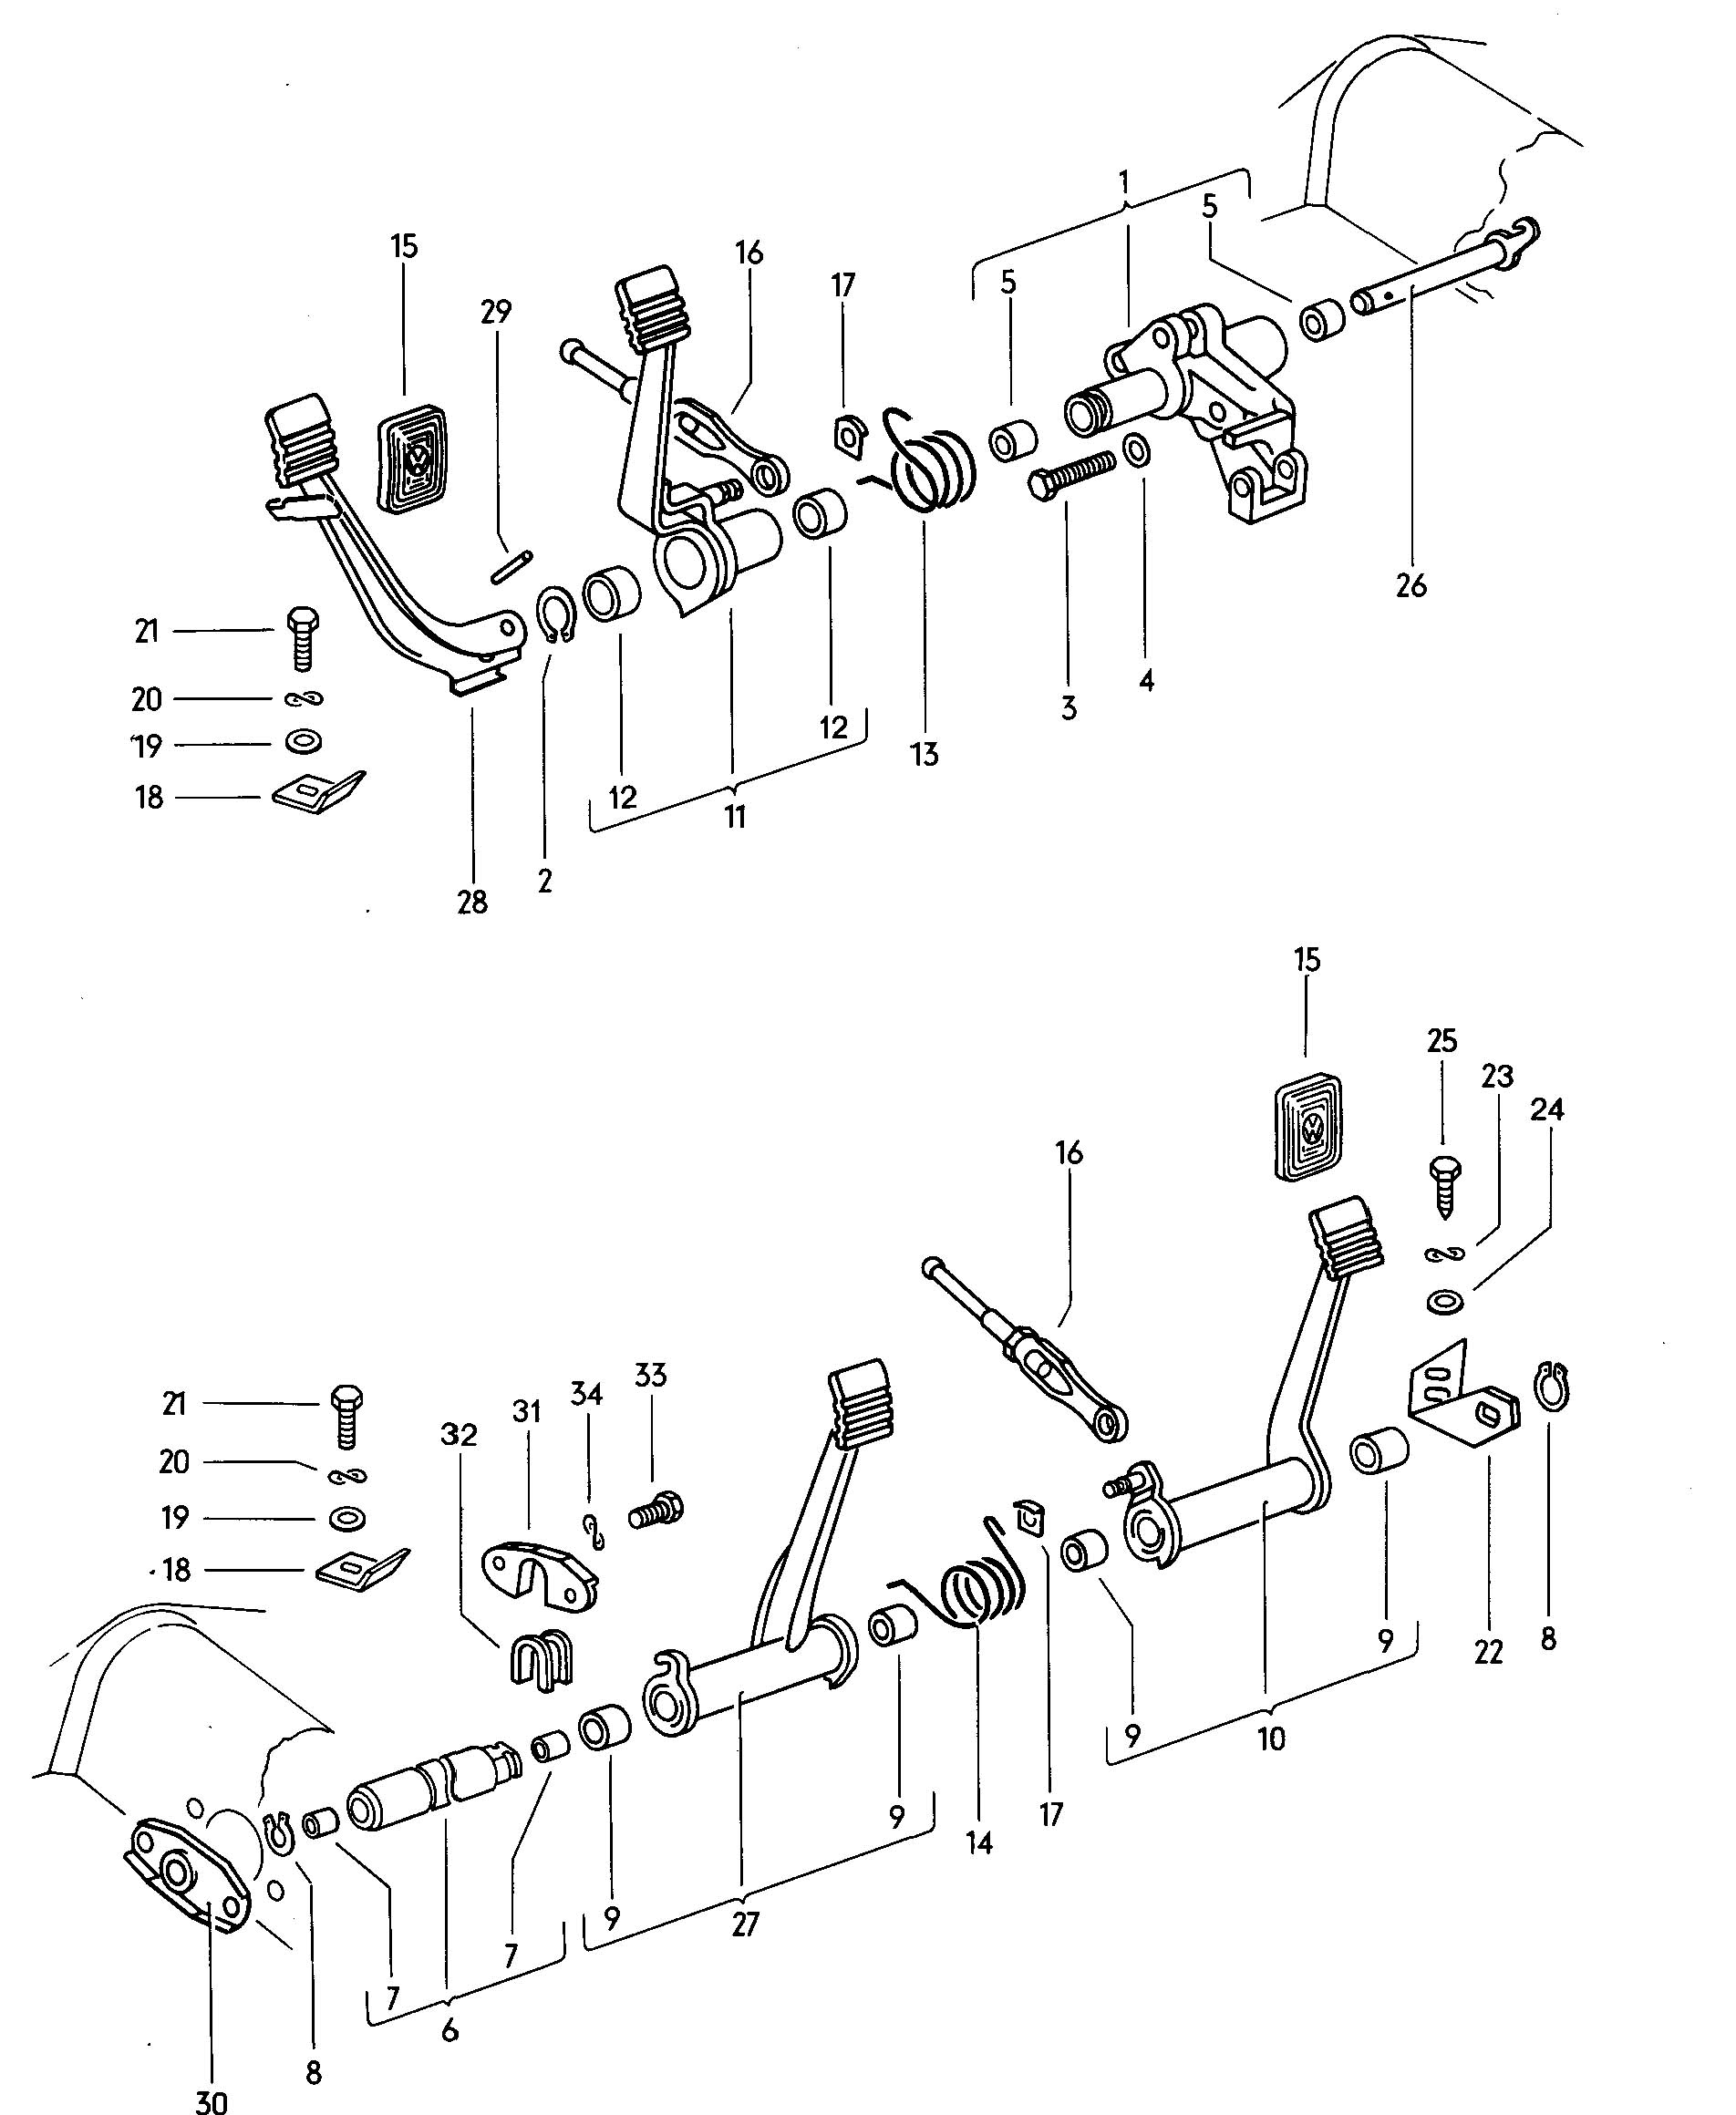 Trikewireing 3 together with 123497214757550311 moreover Vw Sand Rail Wiring Diagram Headlight moreover Trombetta Solenoid Wiring Diagram Ezgo Wiring Diagrams moreover Ignition Coil Wiring Diagram Vw Beetle. on vw rail buggy wiring diagrams